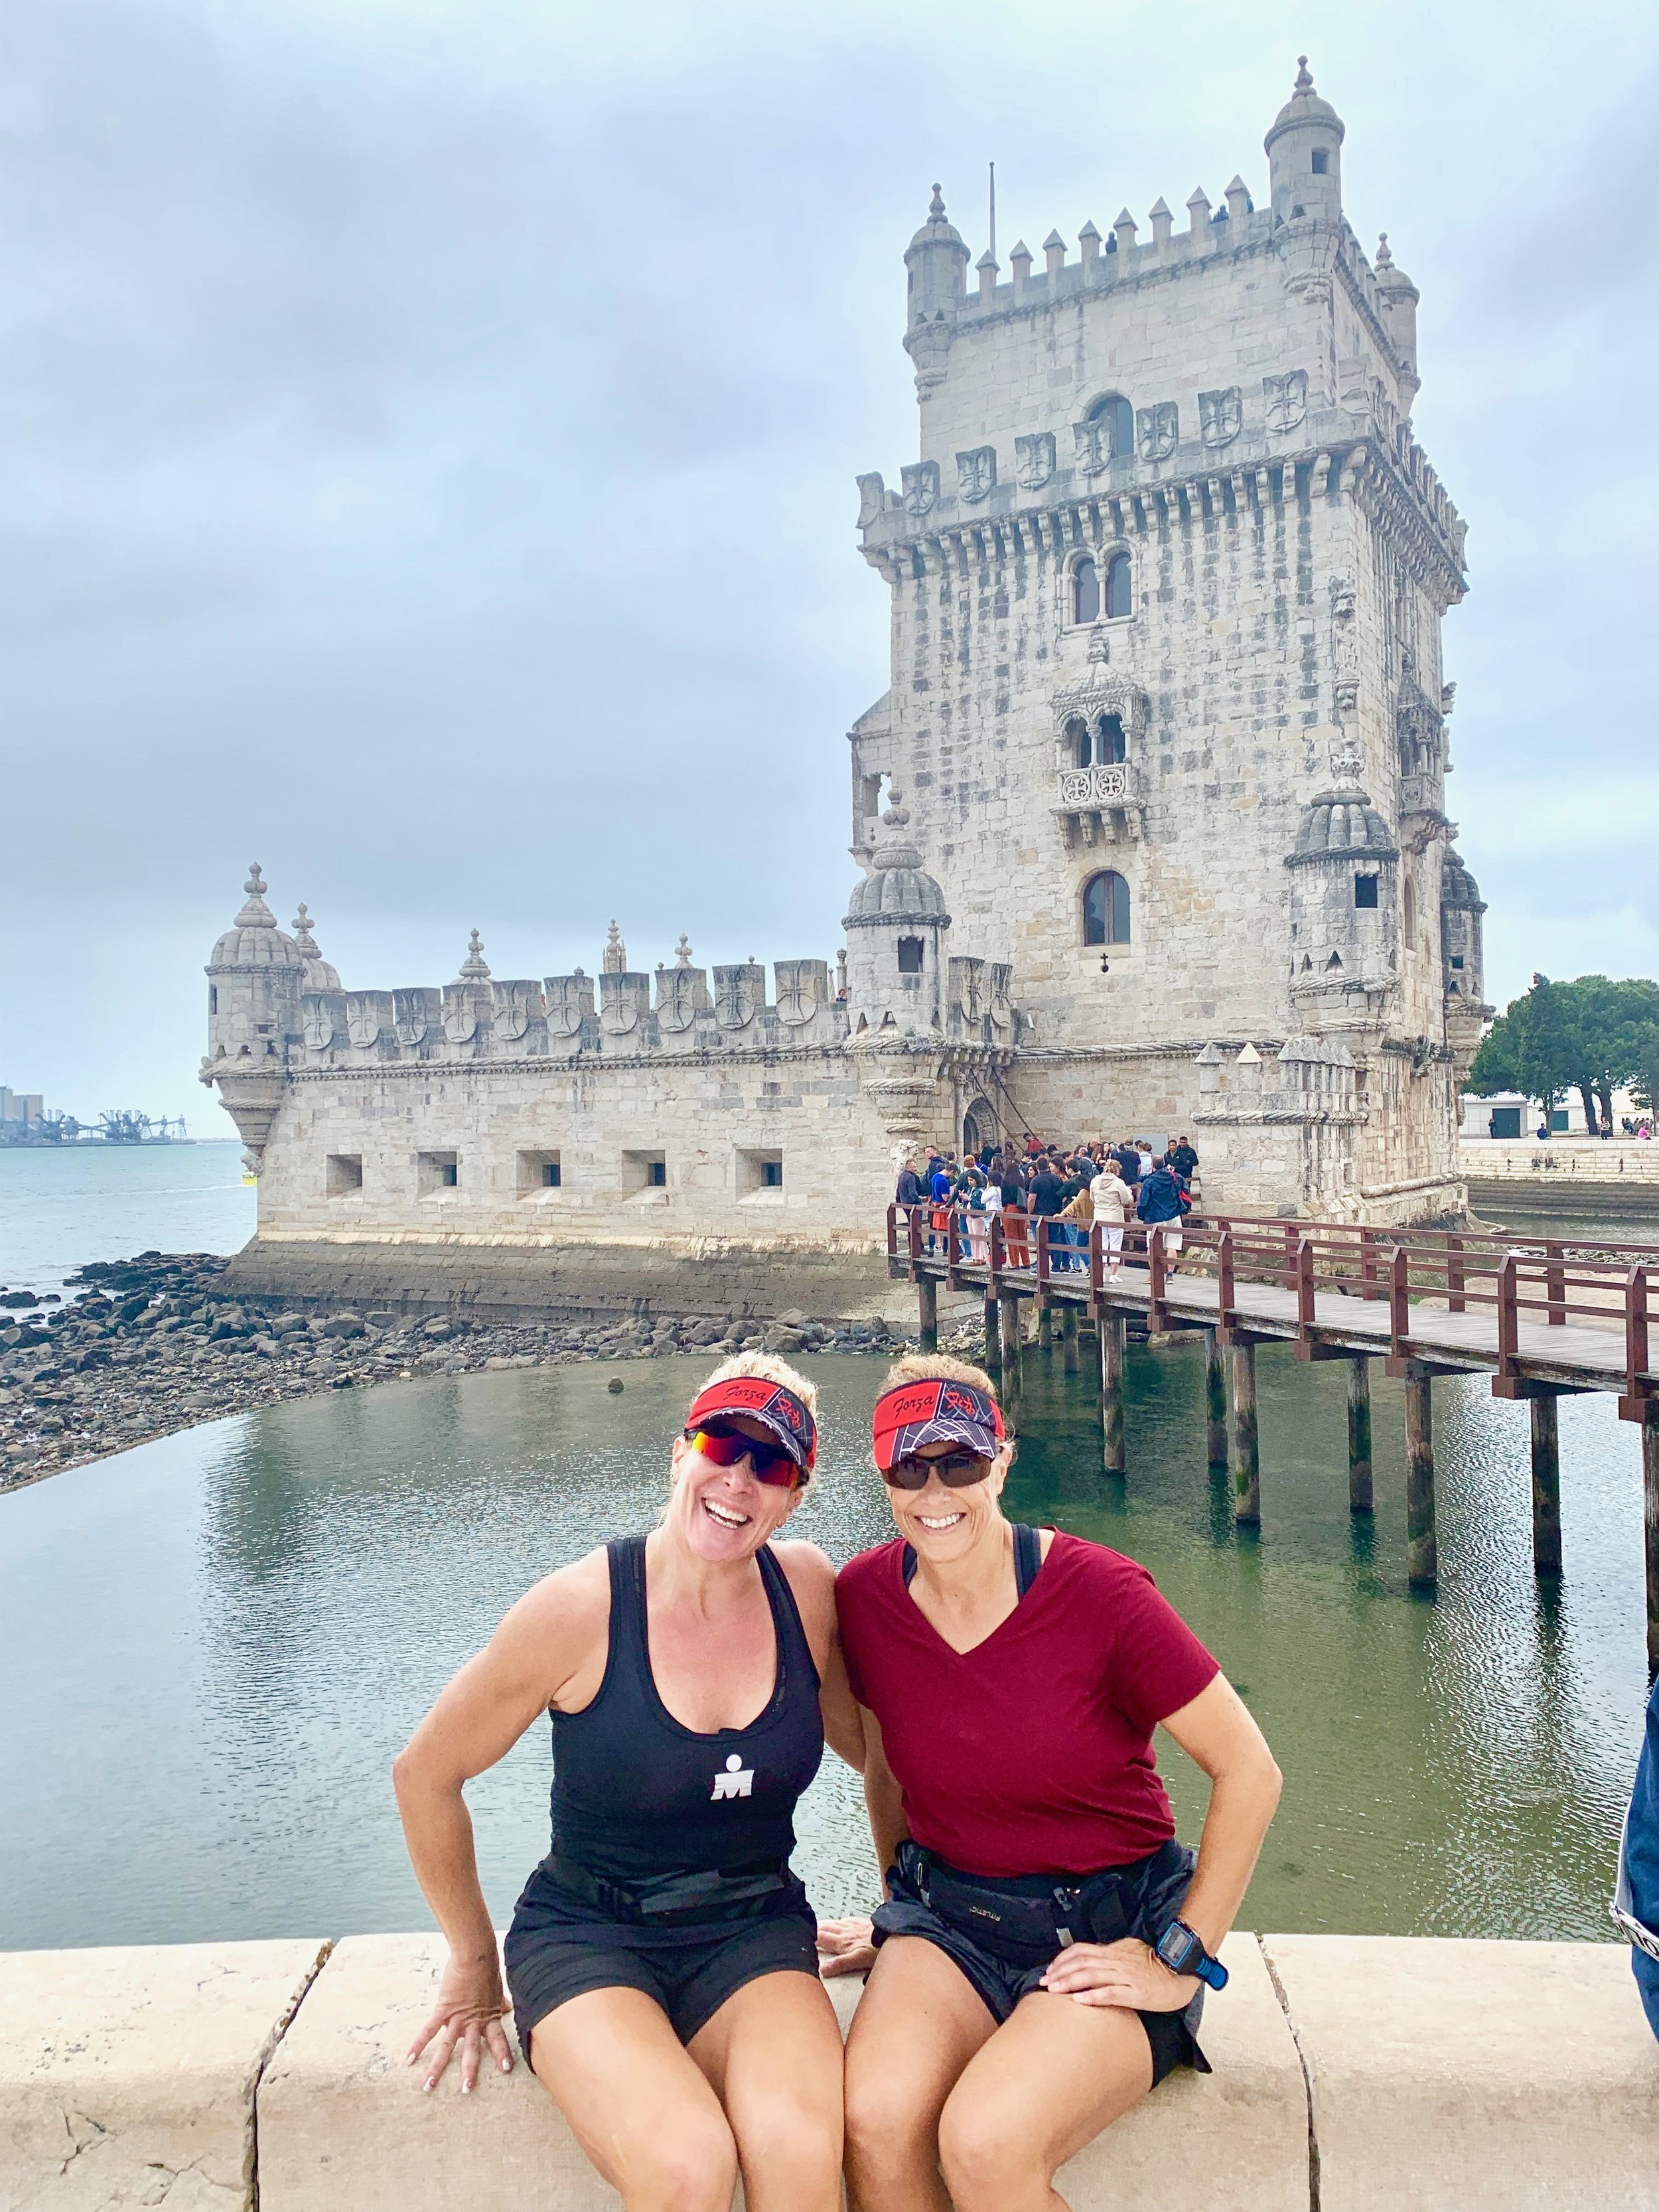 We continued… - our adventure exploring Galicia and Portugal for an additional 15 days.We loved the people, food, sceneries, history, culture and landmarks.Spain and Portugal are countries that everyone should visit and explore.